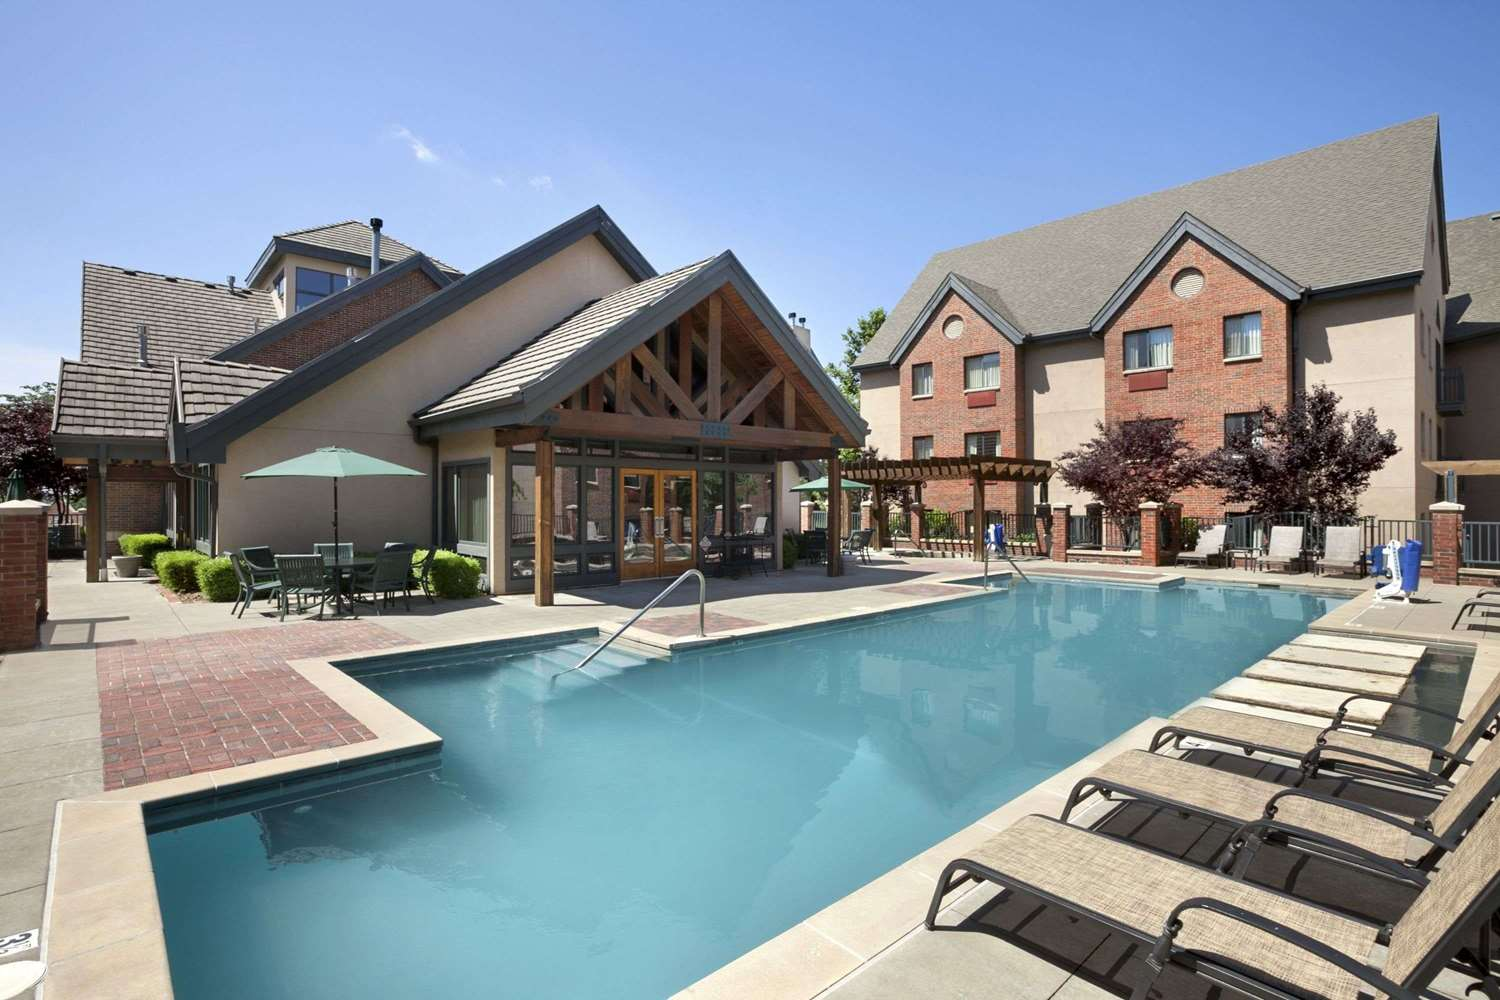 Pool - Hawthorn Suites by Wyndham at Overland Park